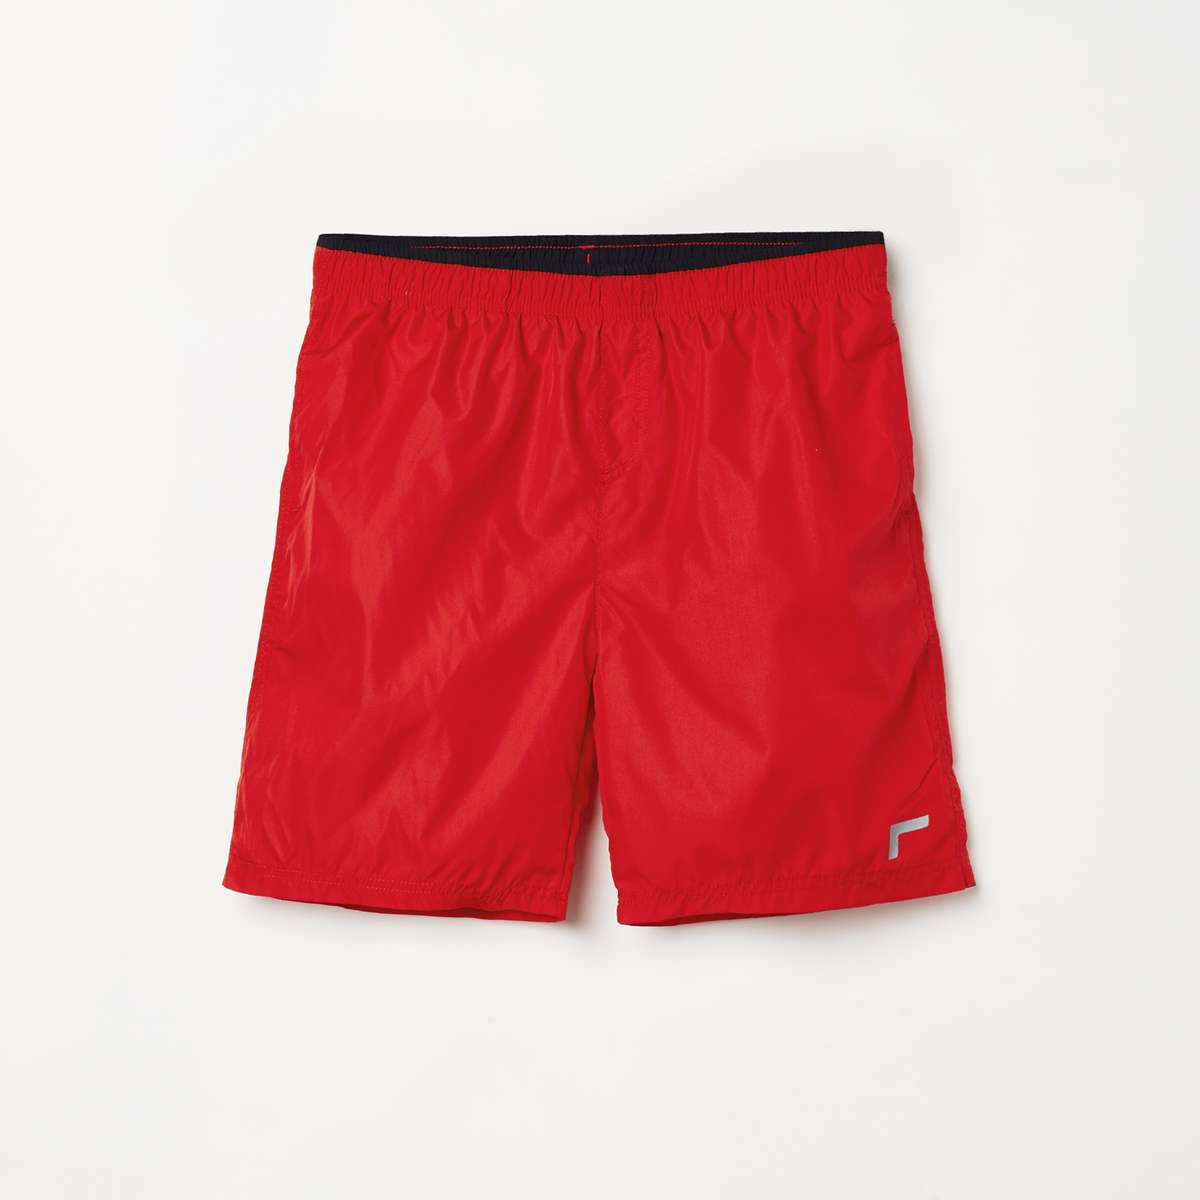 4.FAME ACTIVE Boys Solid Elasticated Woven Shorts